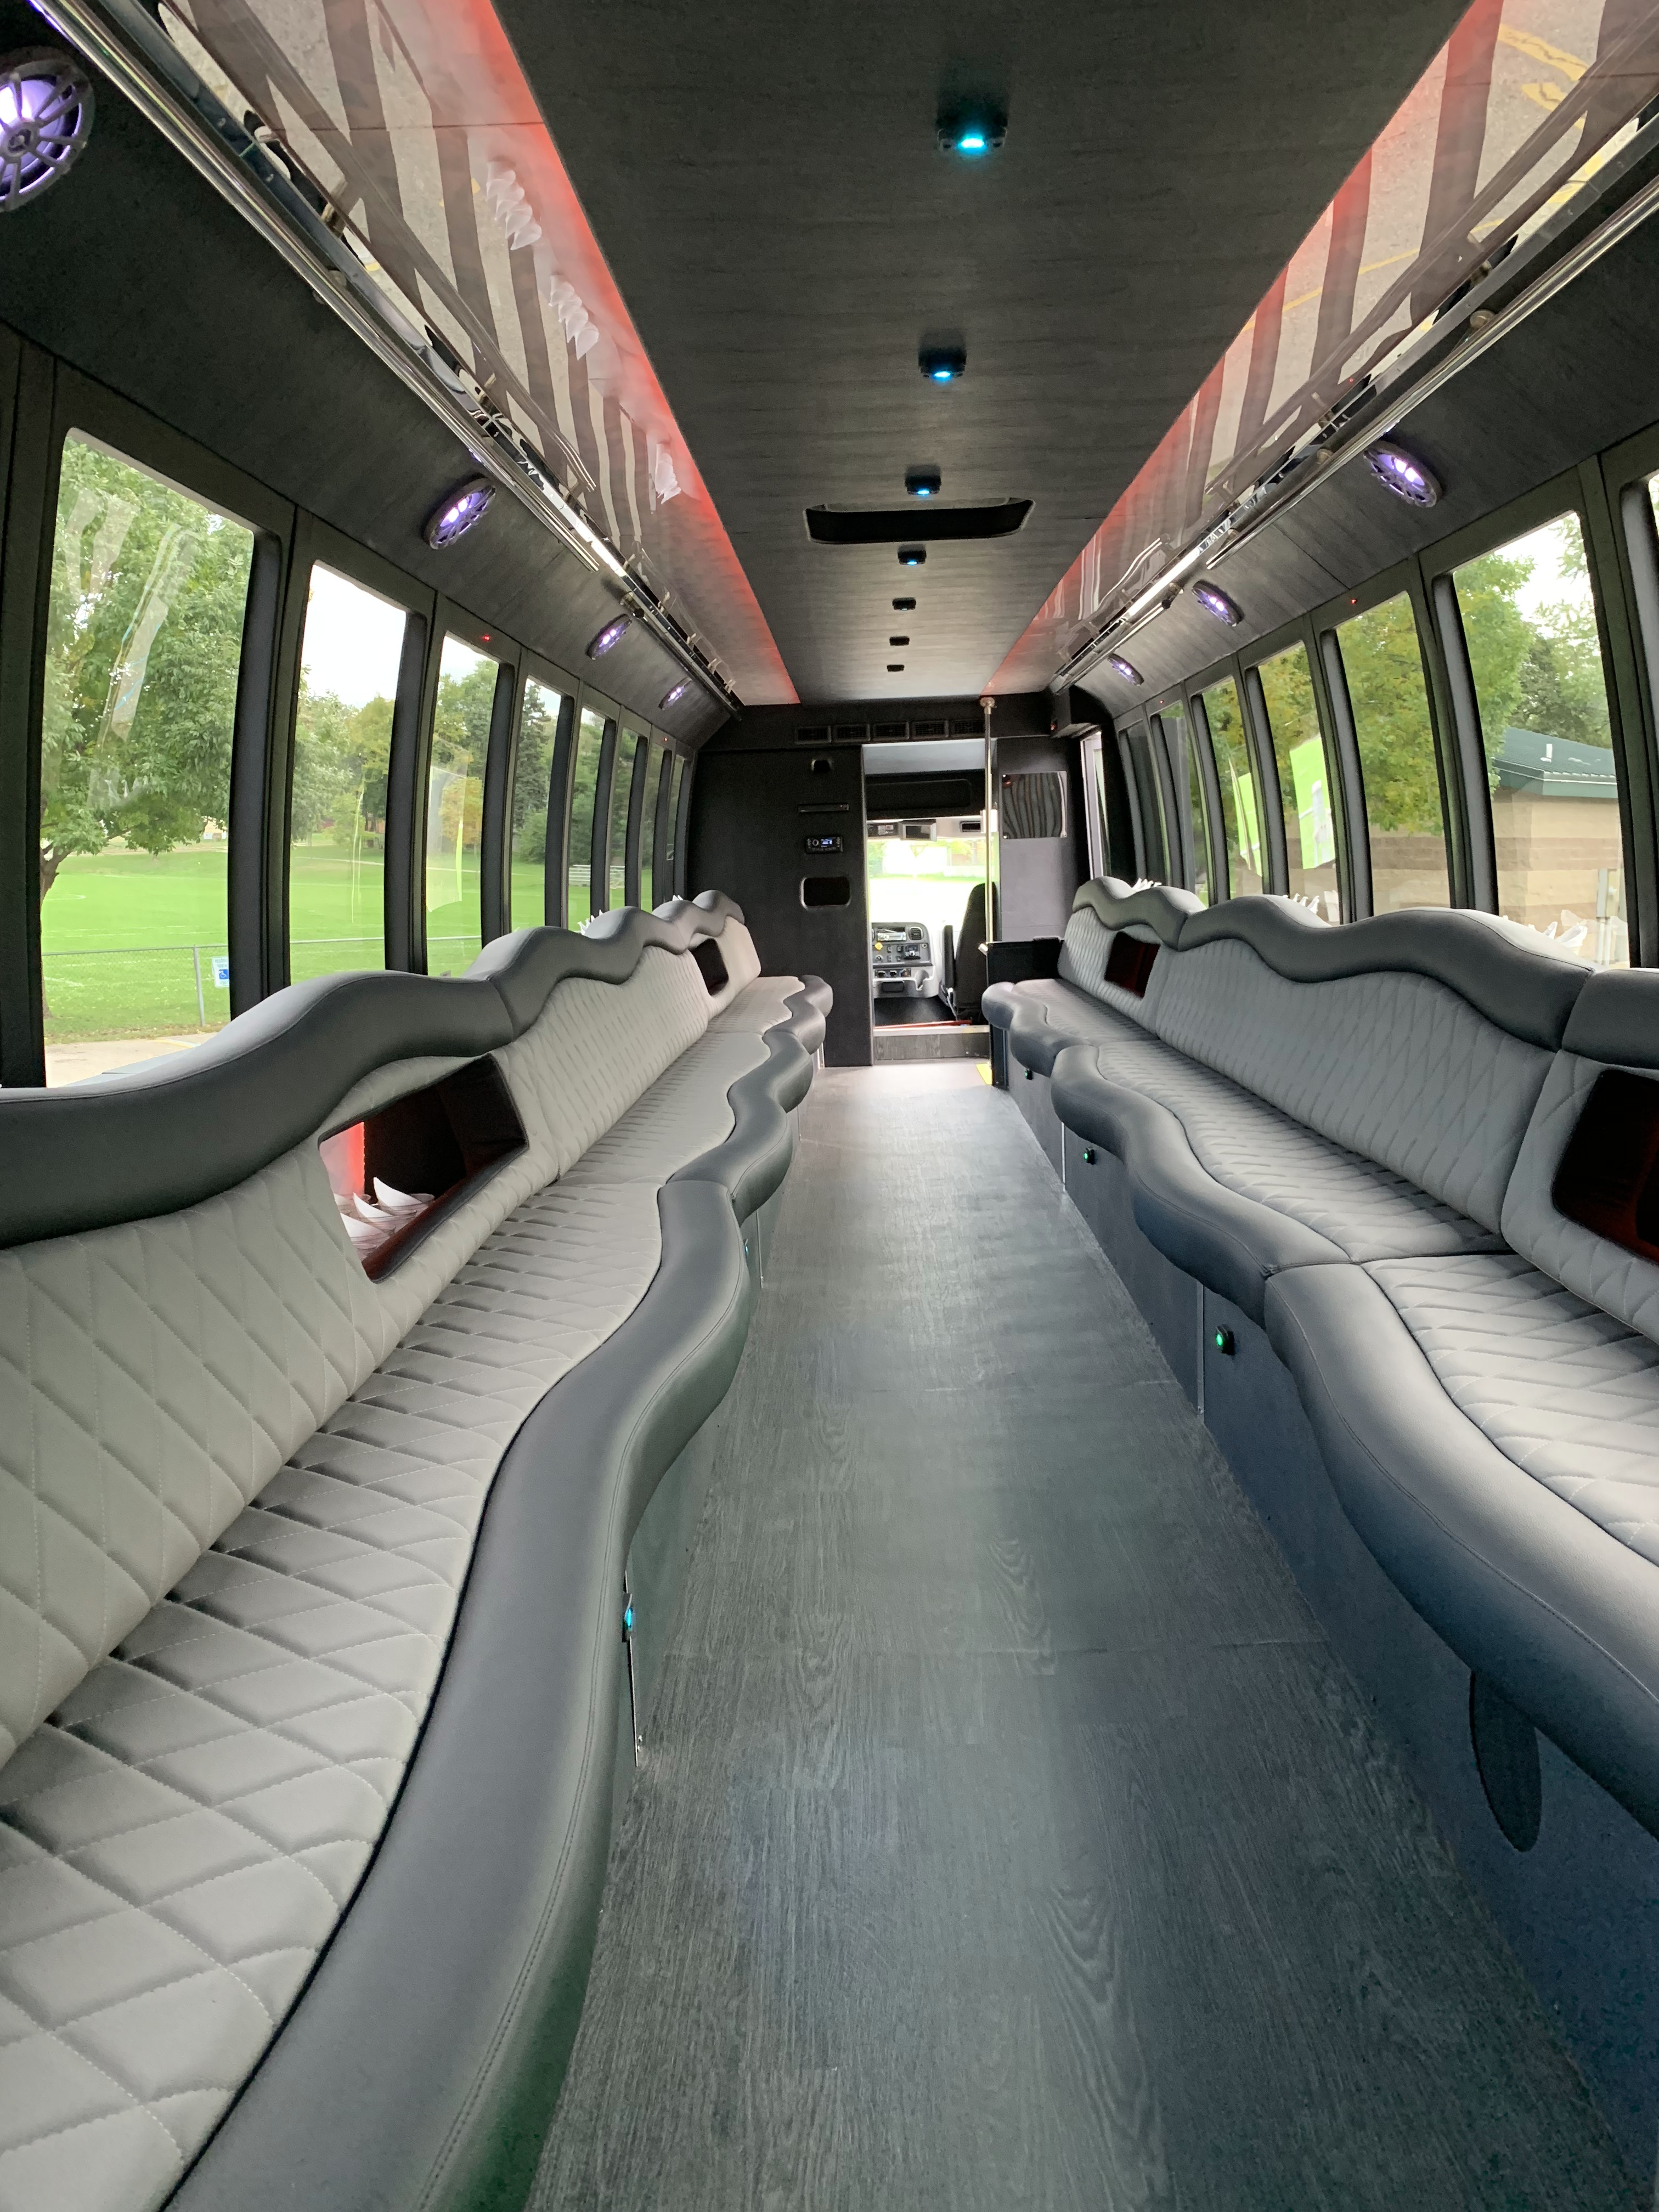 45 Passenger Luxury Limo Coach Full Interior 2